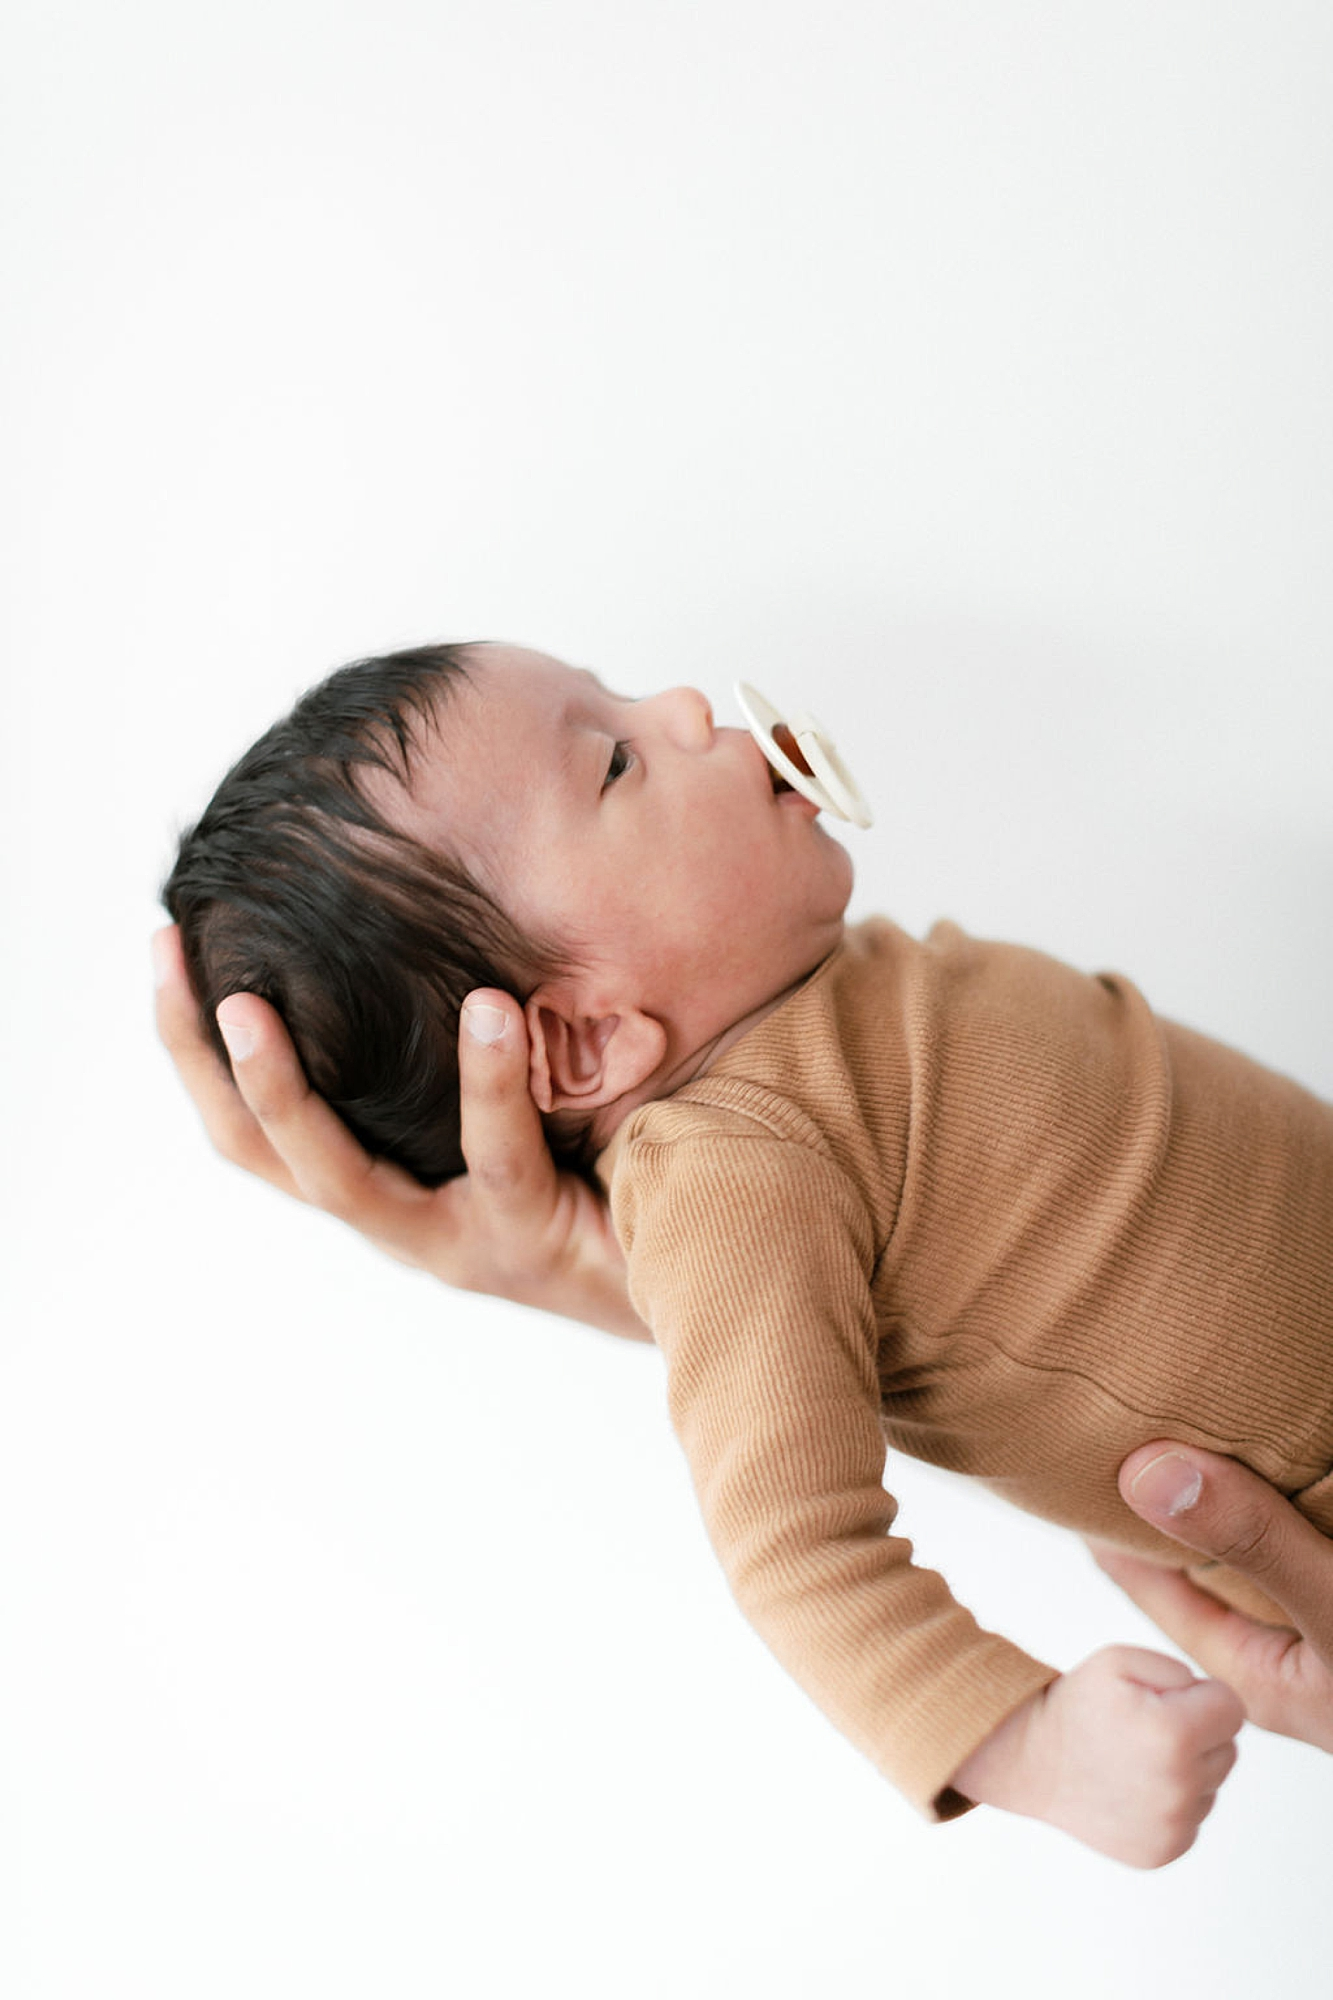 Lifestyle Home Newborn Session Family Portraits NYC by Magdalena Studios26